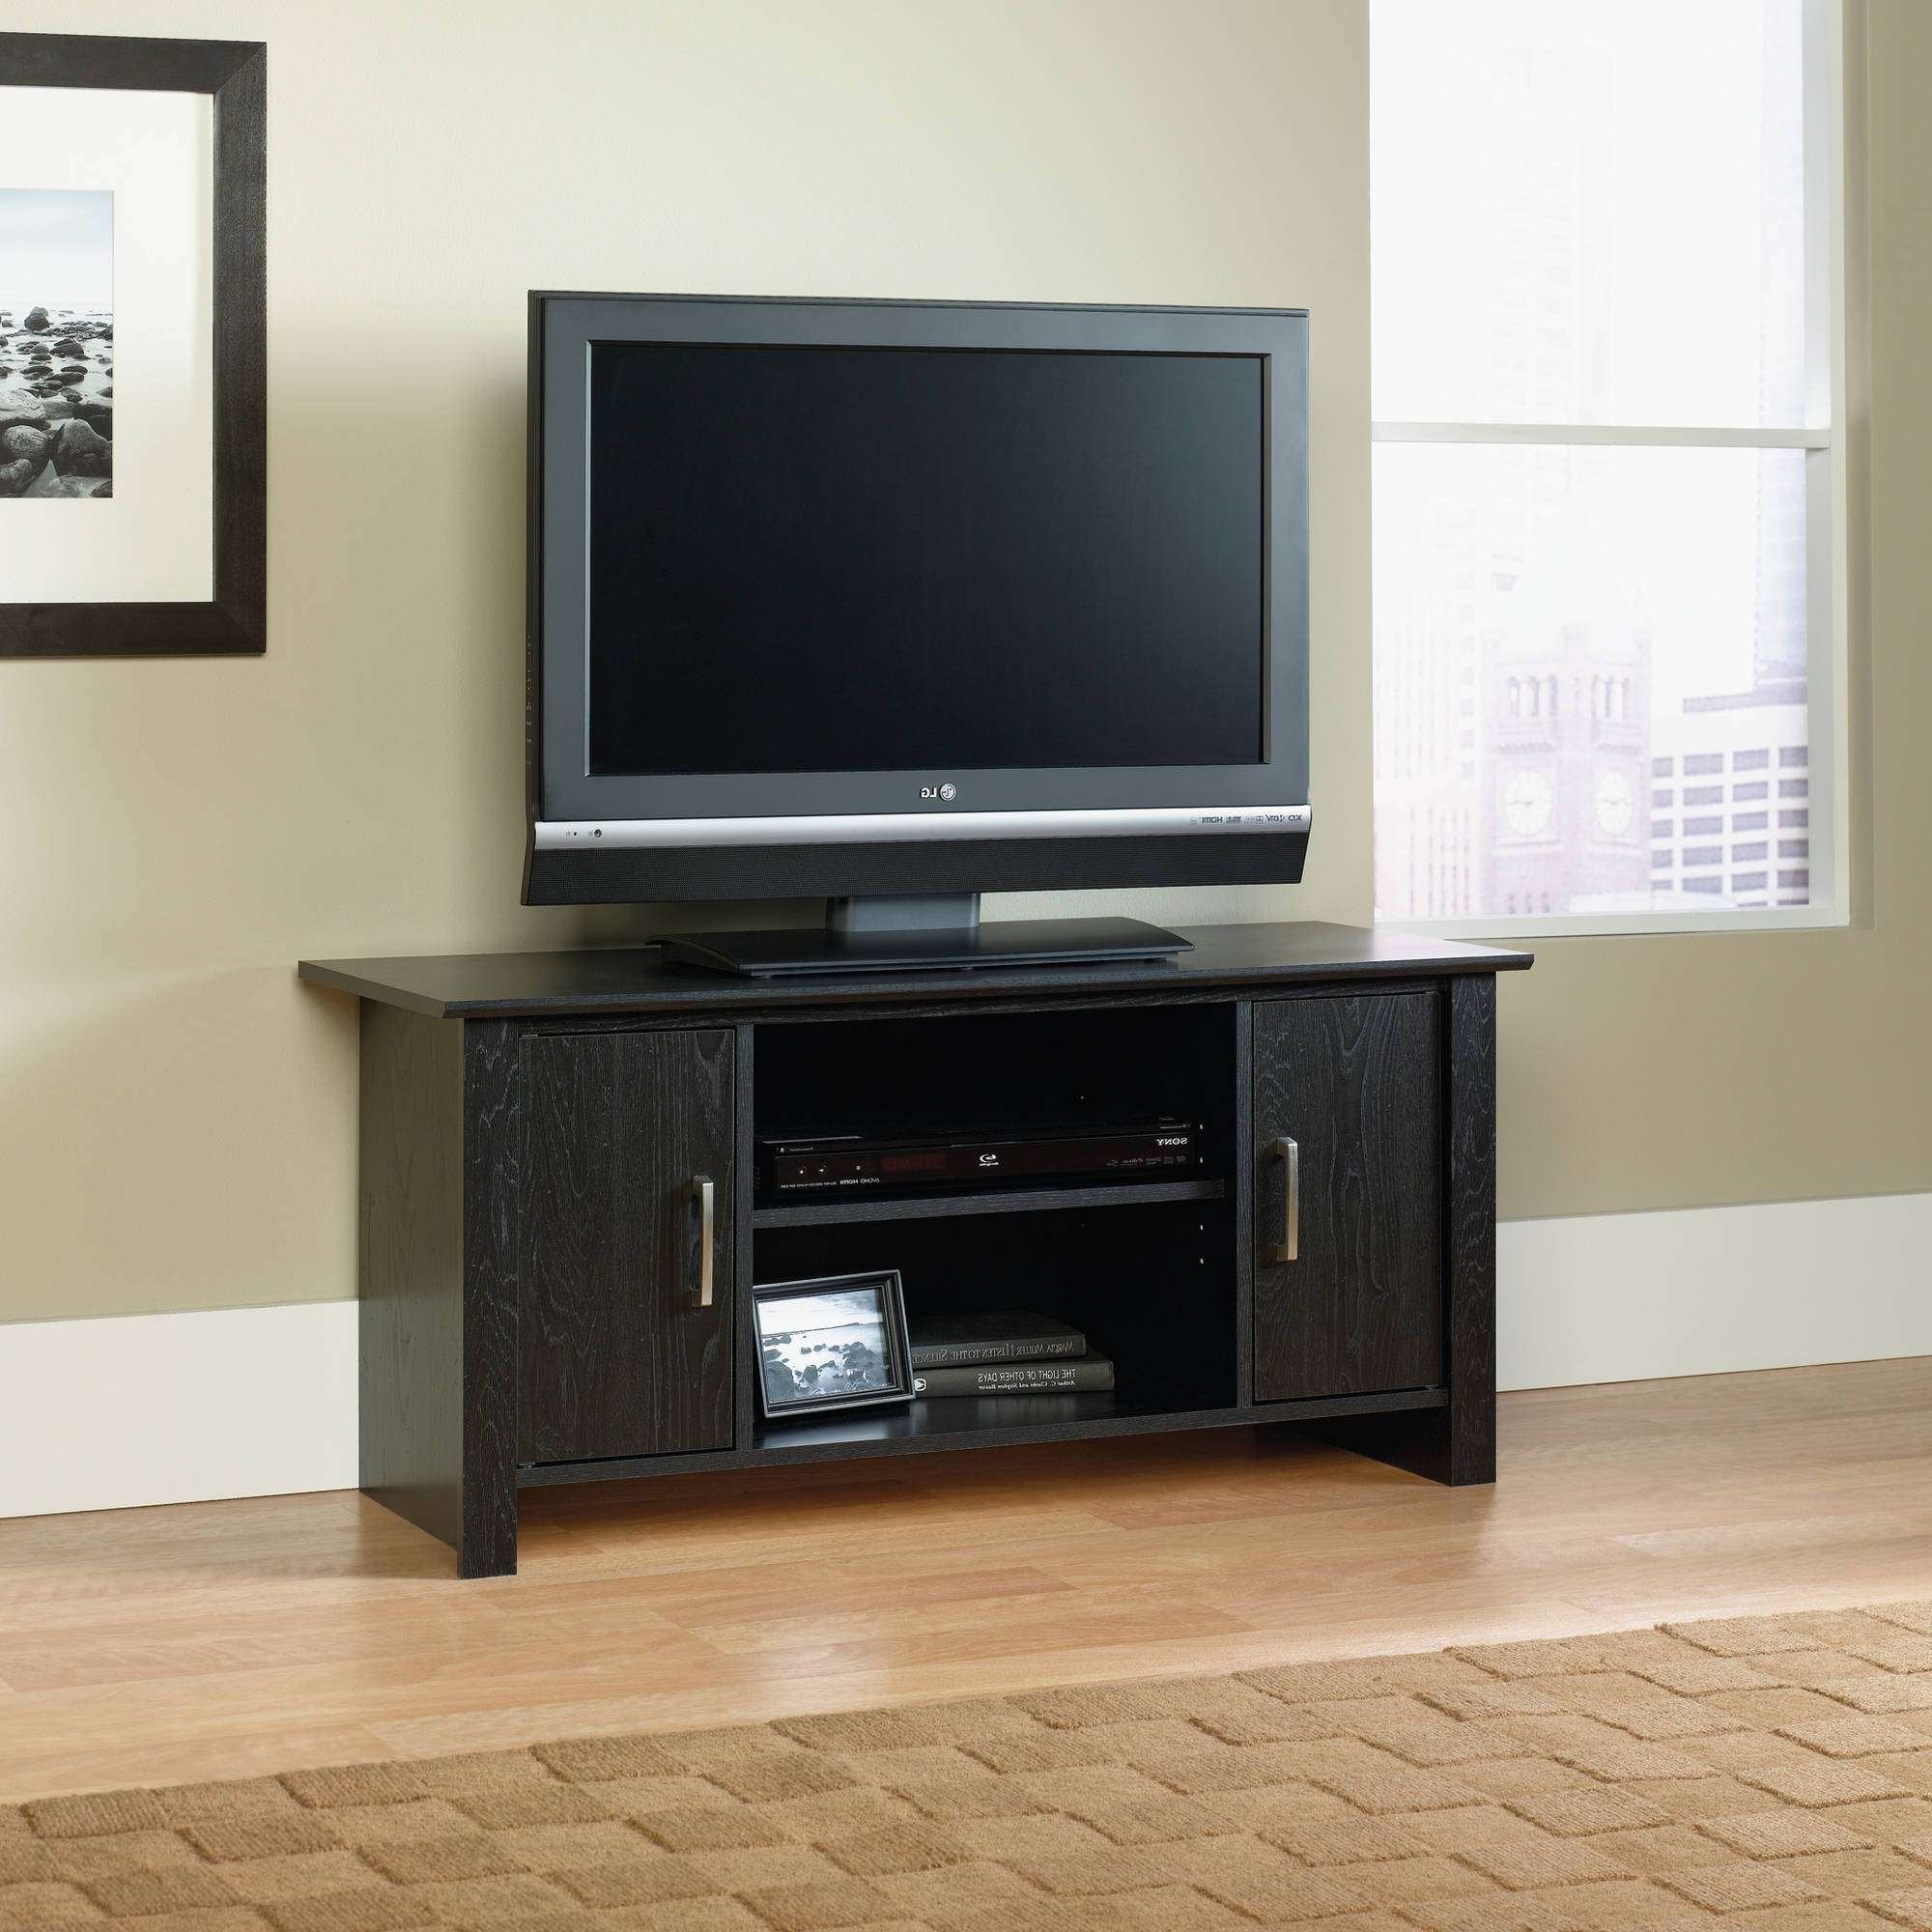 """Mainstays Tv Stand For Flat Screen Tvs Up To 47"""", Multiple Finish Regarding Single Shelf Tv Stands (View 14 of 15)"""